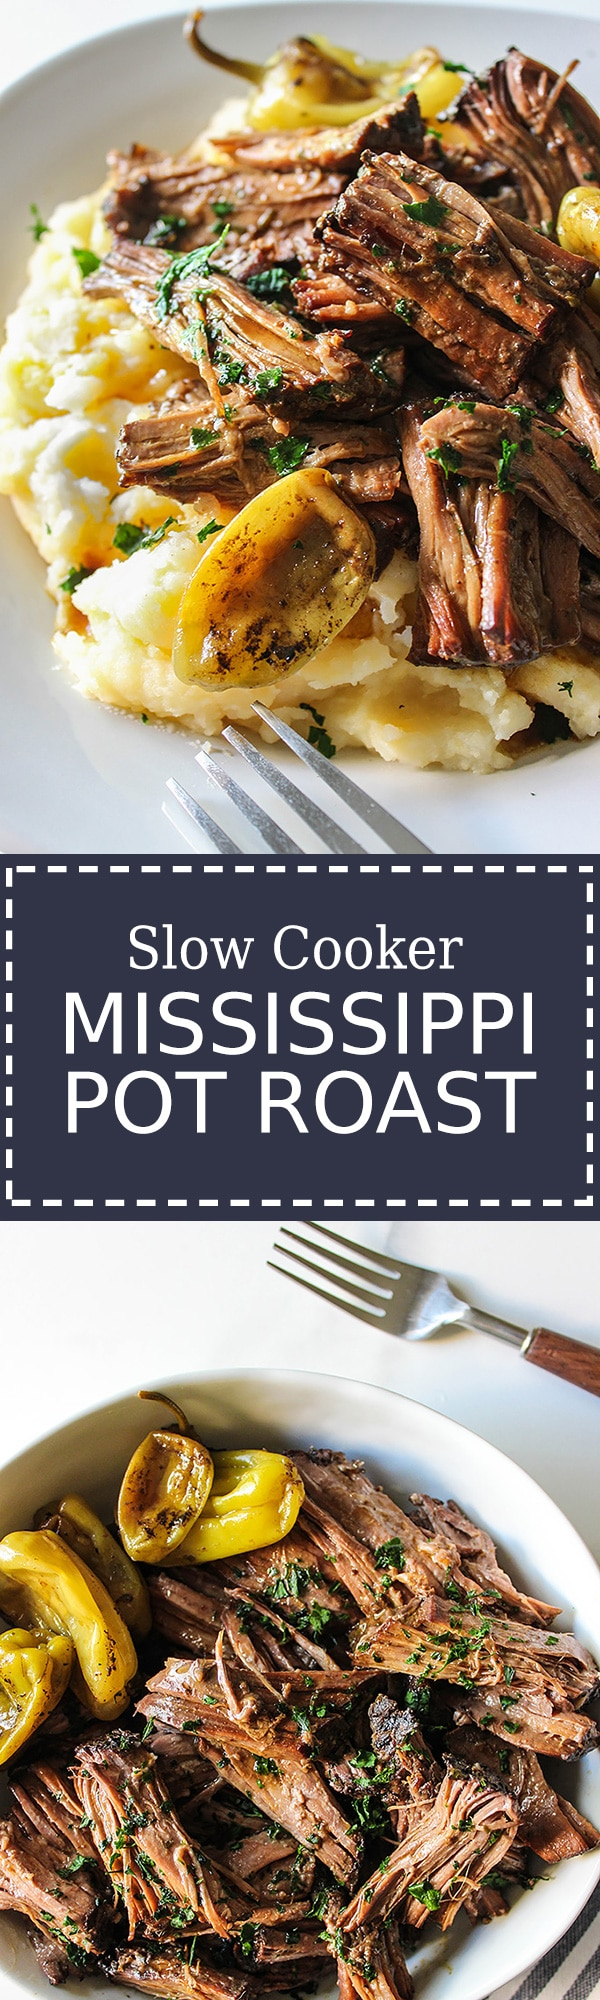 Two images of Mississippi pot roast in a plate and bowl.